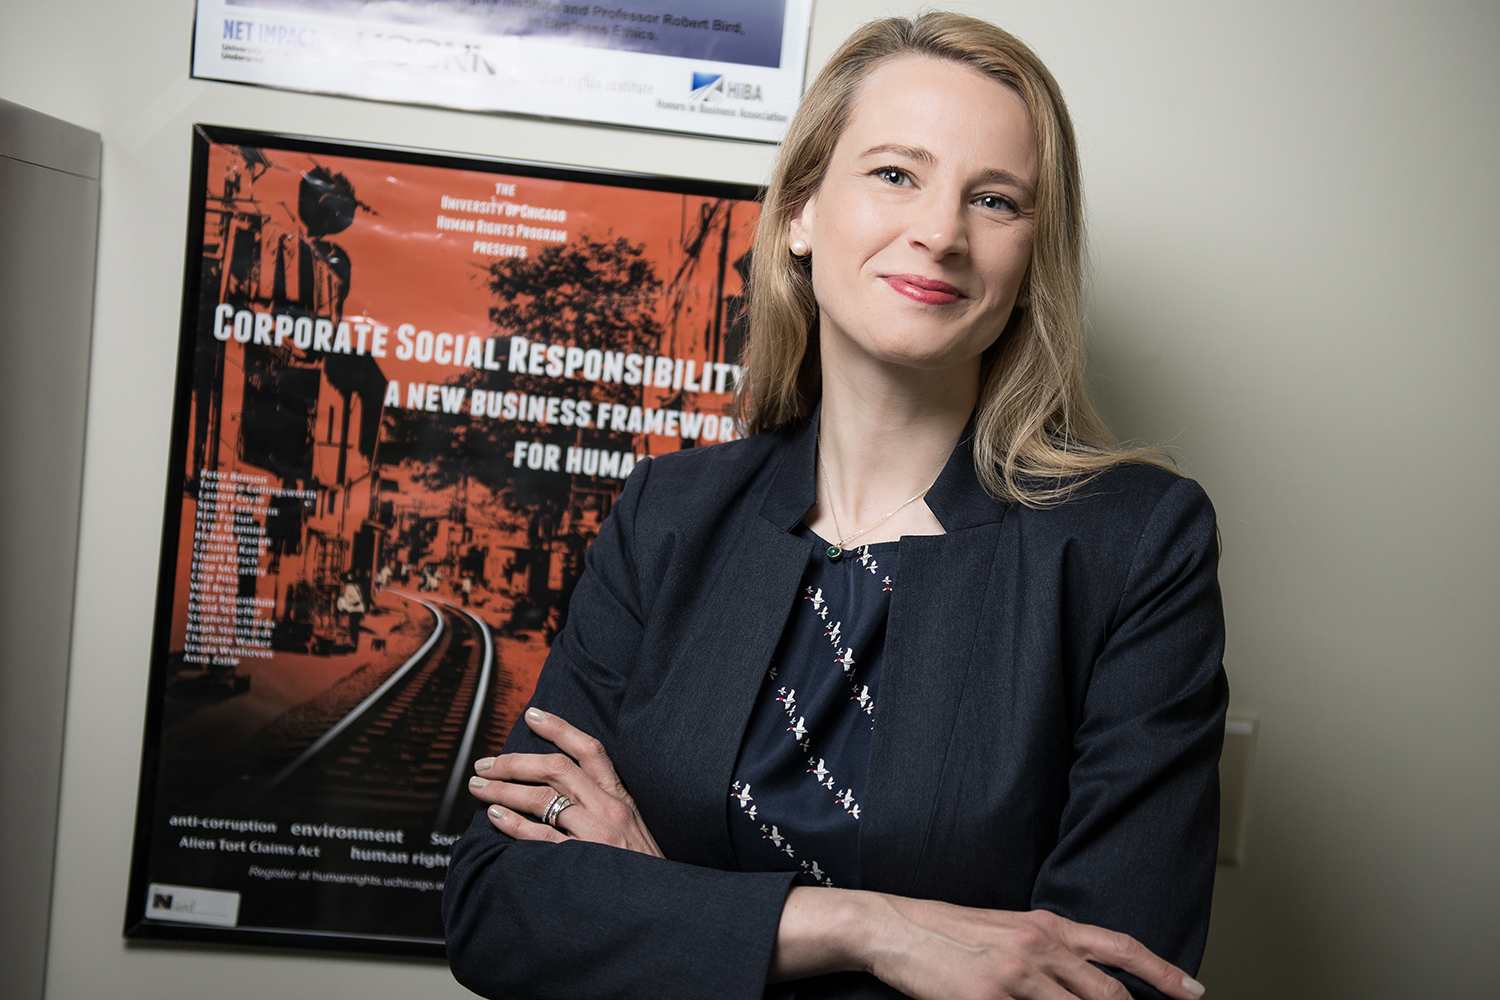 Caroline Kaeb is an Assistant Professor of Business Law and Human Rights at the UConn School of Business, where she holds a joint appointment with the Human Rights Institute and a courtesy appointment with the School of Law. (Nathan Oldham/UConn photo)